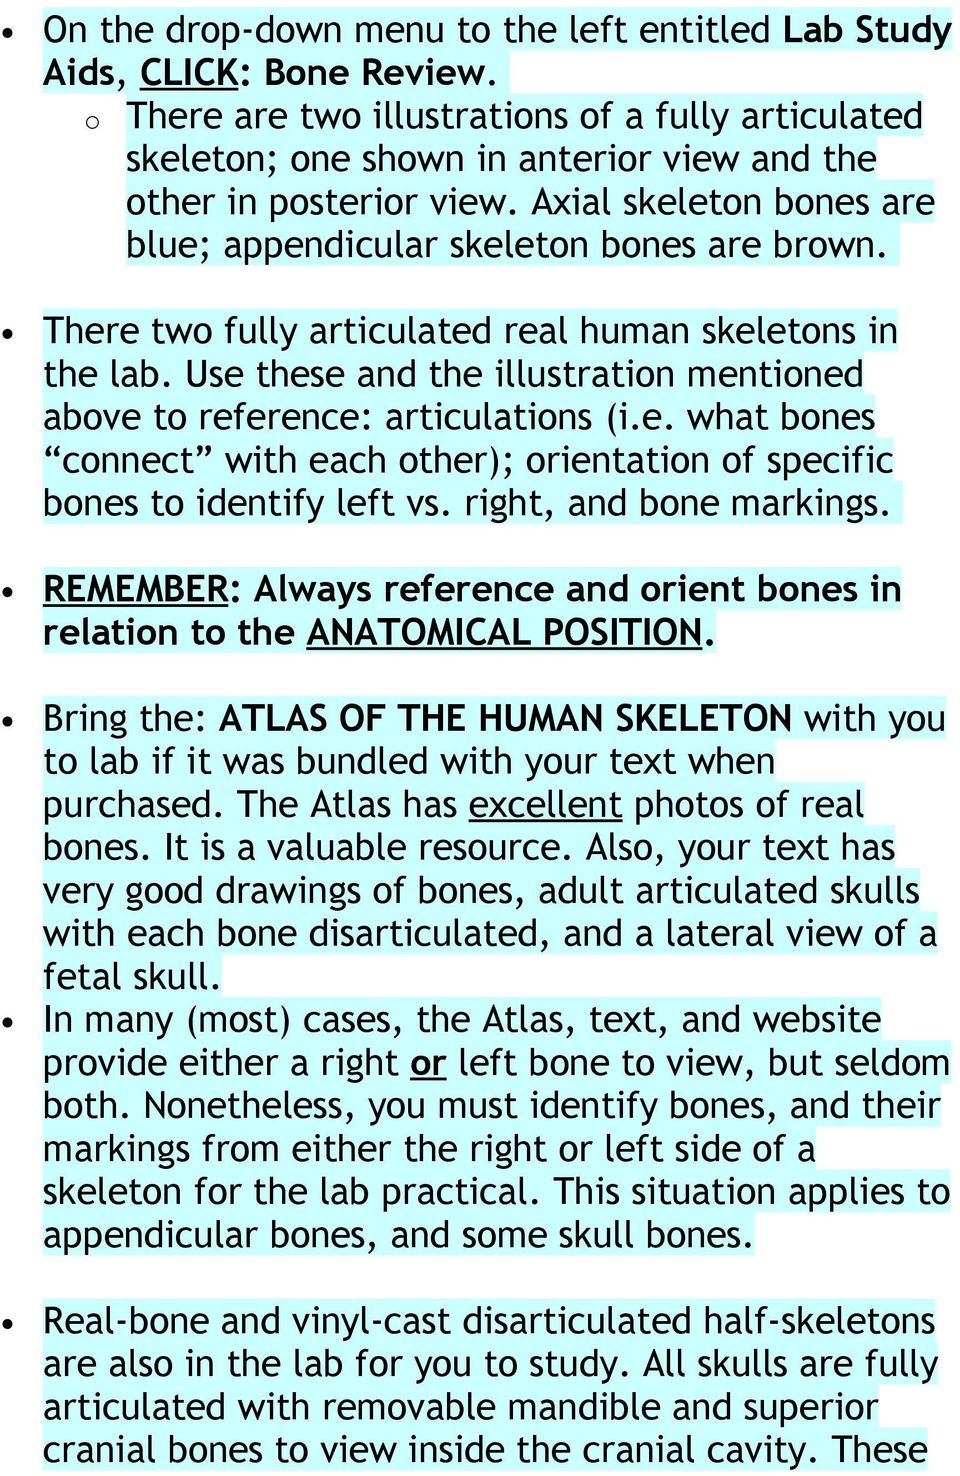 There two fully articulated real human skeletons in the lab. Use these and the illustration mentioned above to reference: articulations (i.e. what bones connect with each other); orientation of specific bones to identify left vs.